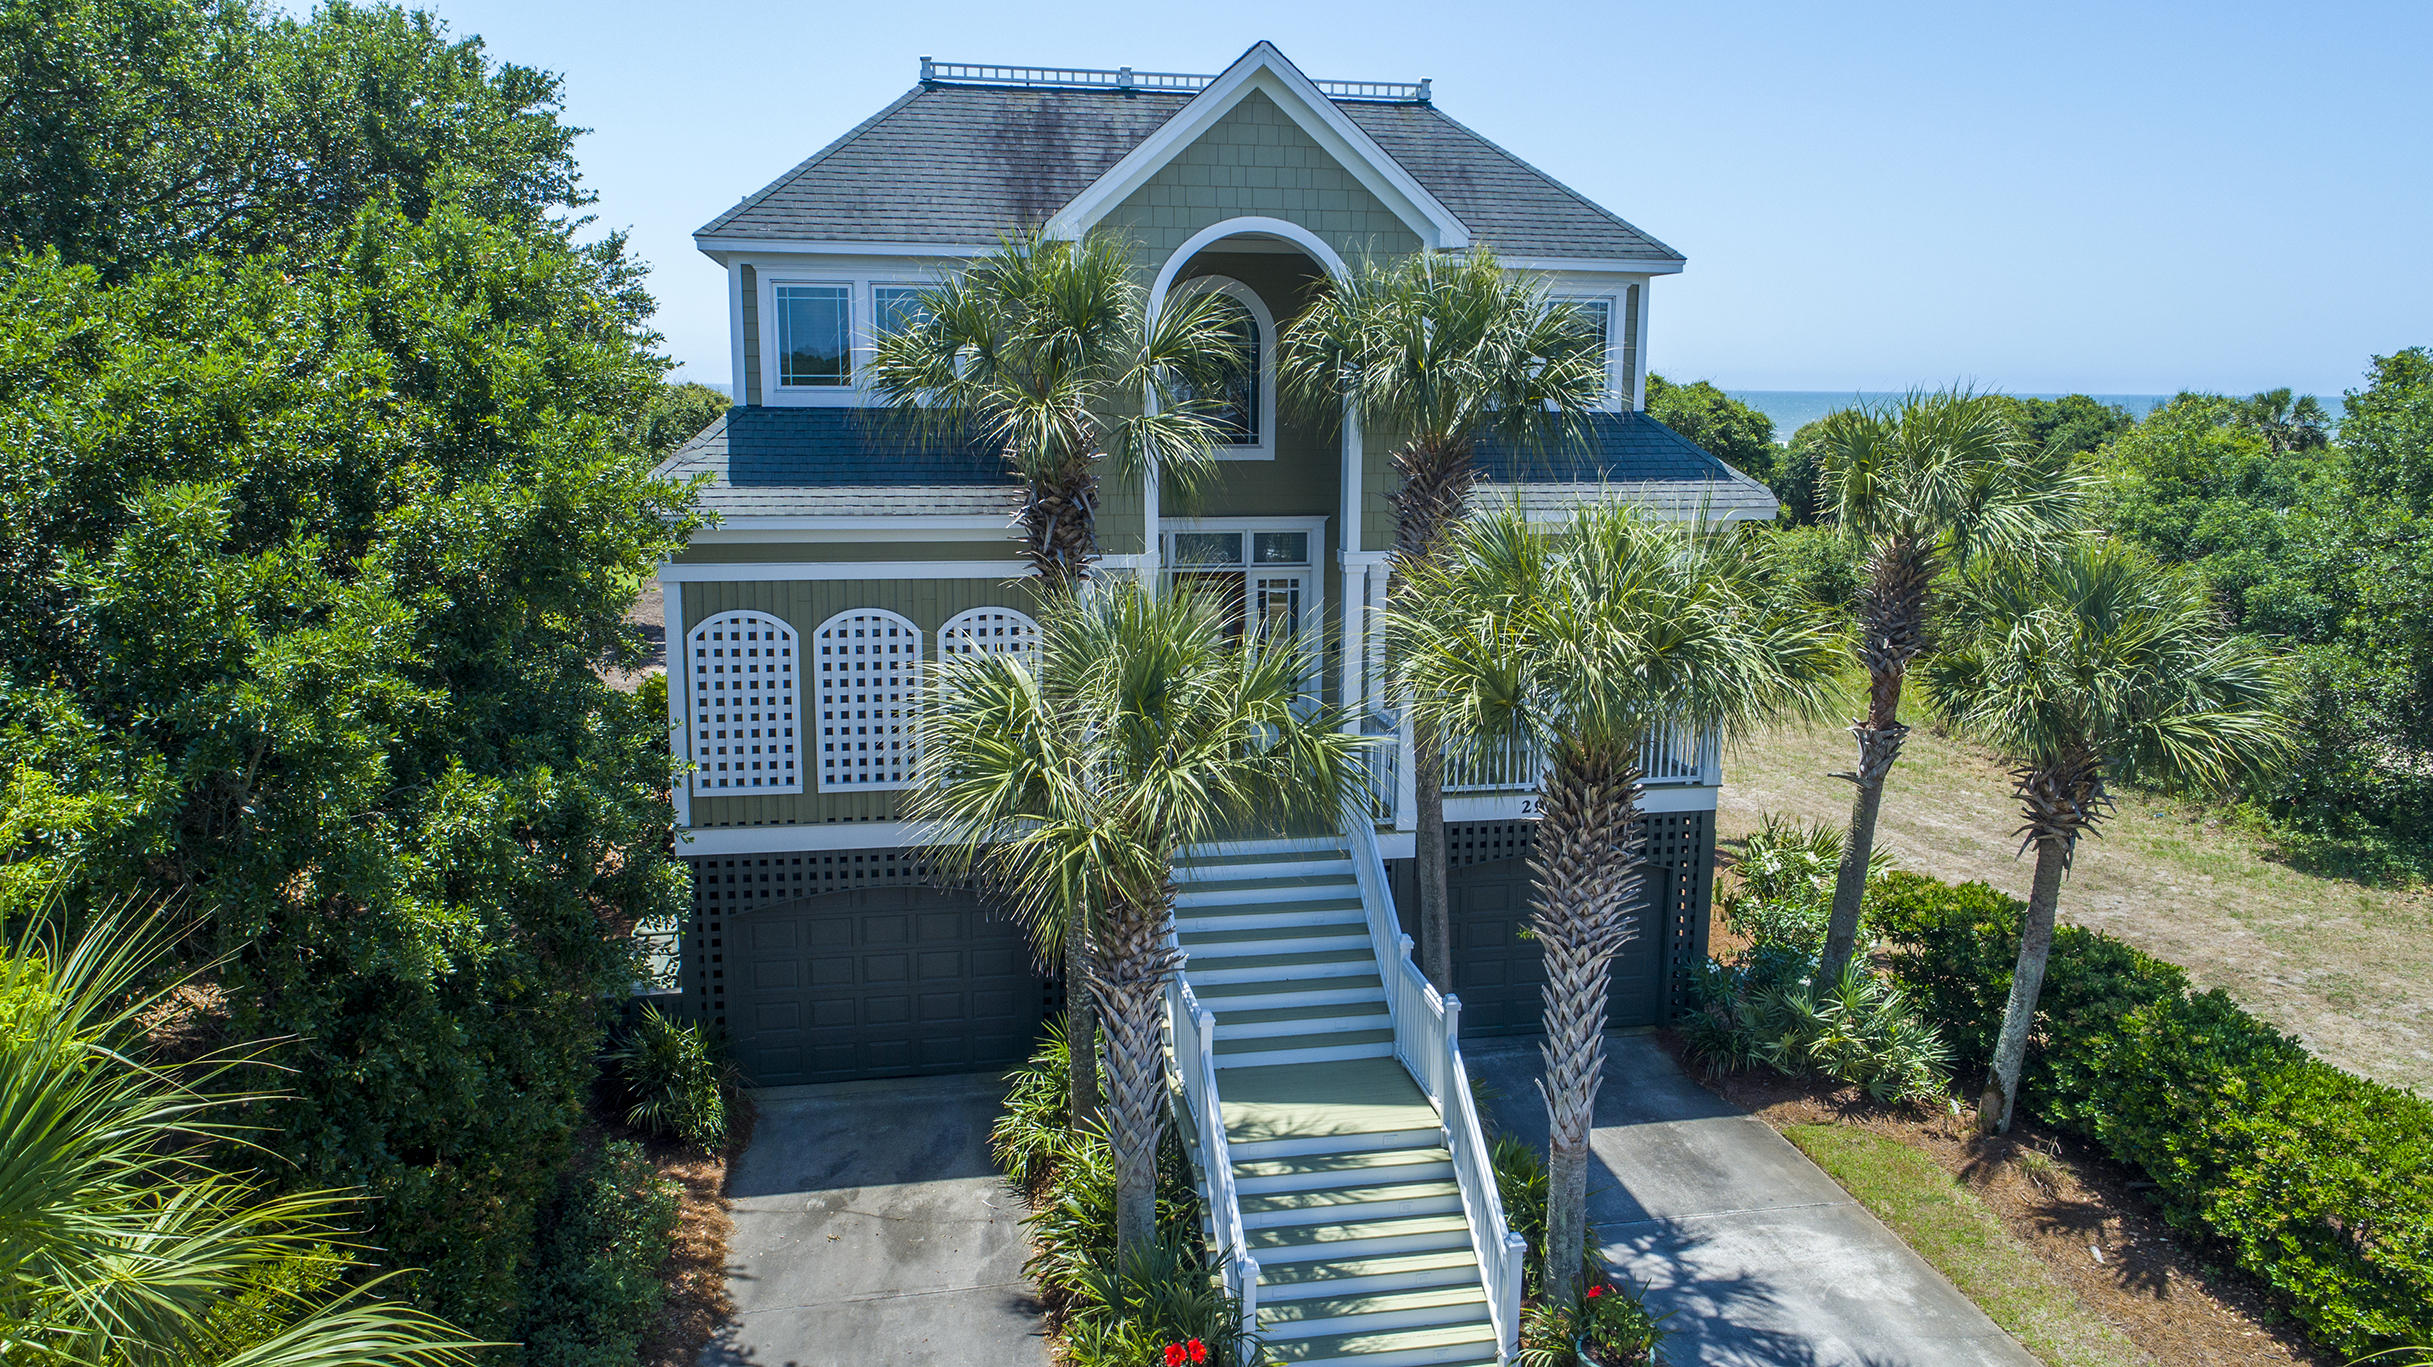 Photo of 2916 Palm Blvd, Isle of Palms, SC 29451